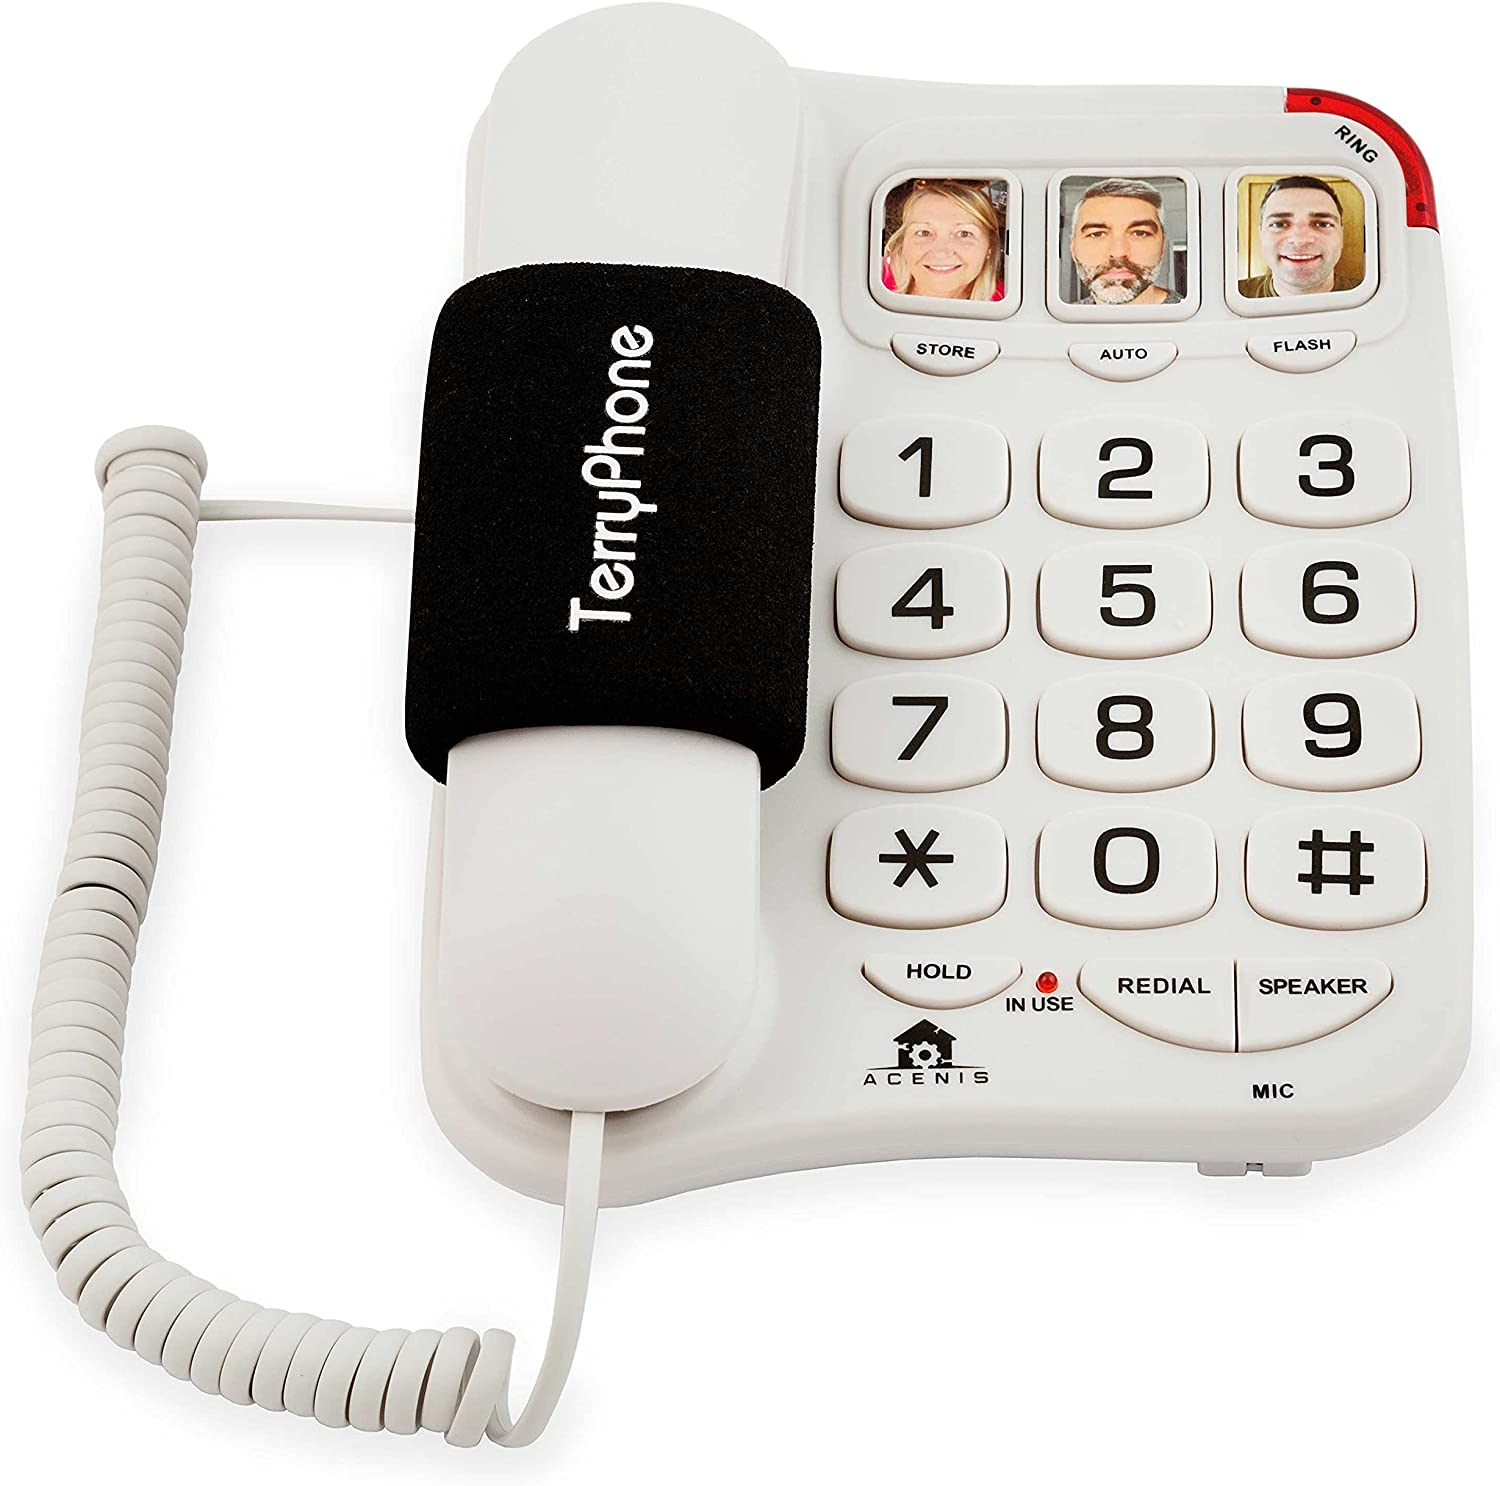 Big Button Phone for Seniors - Corded Landline Telephone - One-Touch Dialling for Visually Impaired - Amplified Ringer with Loud Speaker for Hearing Impaired, Ergonomic Non-Slip Grip